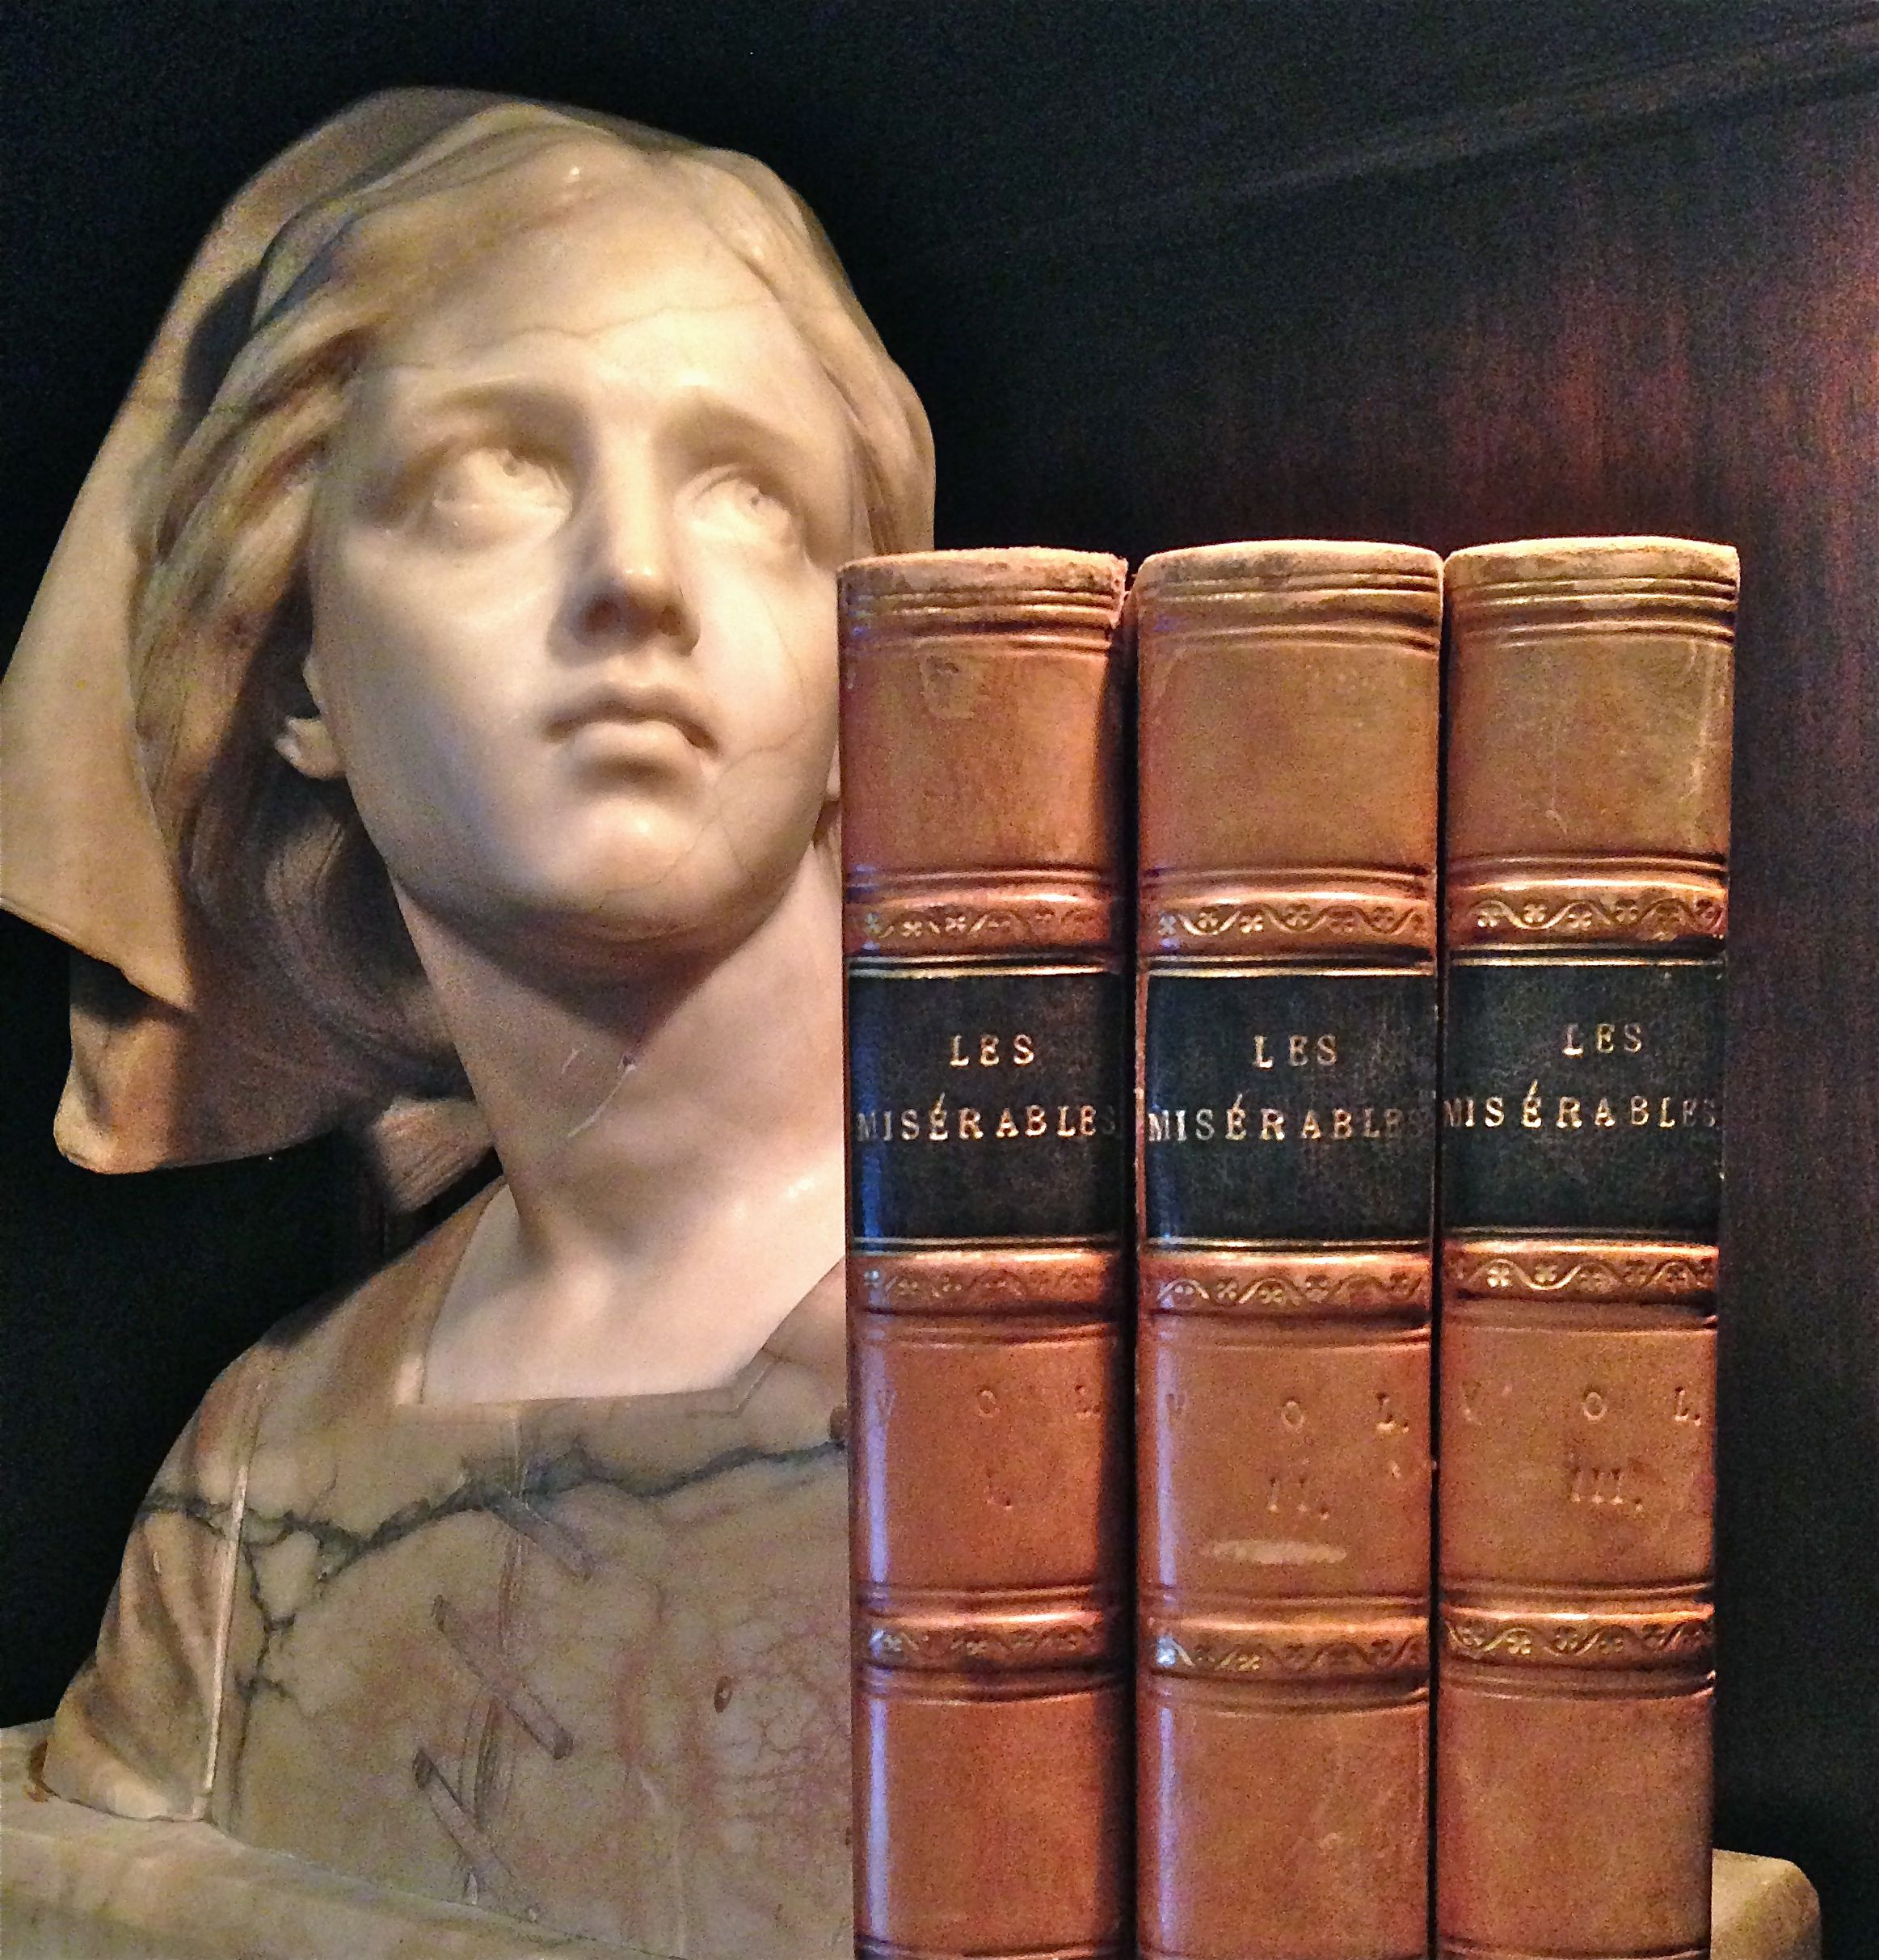 First edition 1862 les miserables this is the first